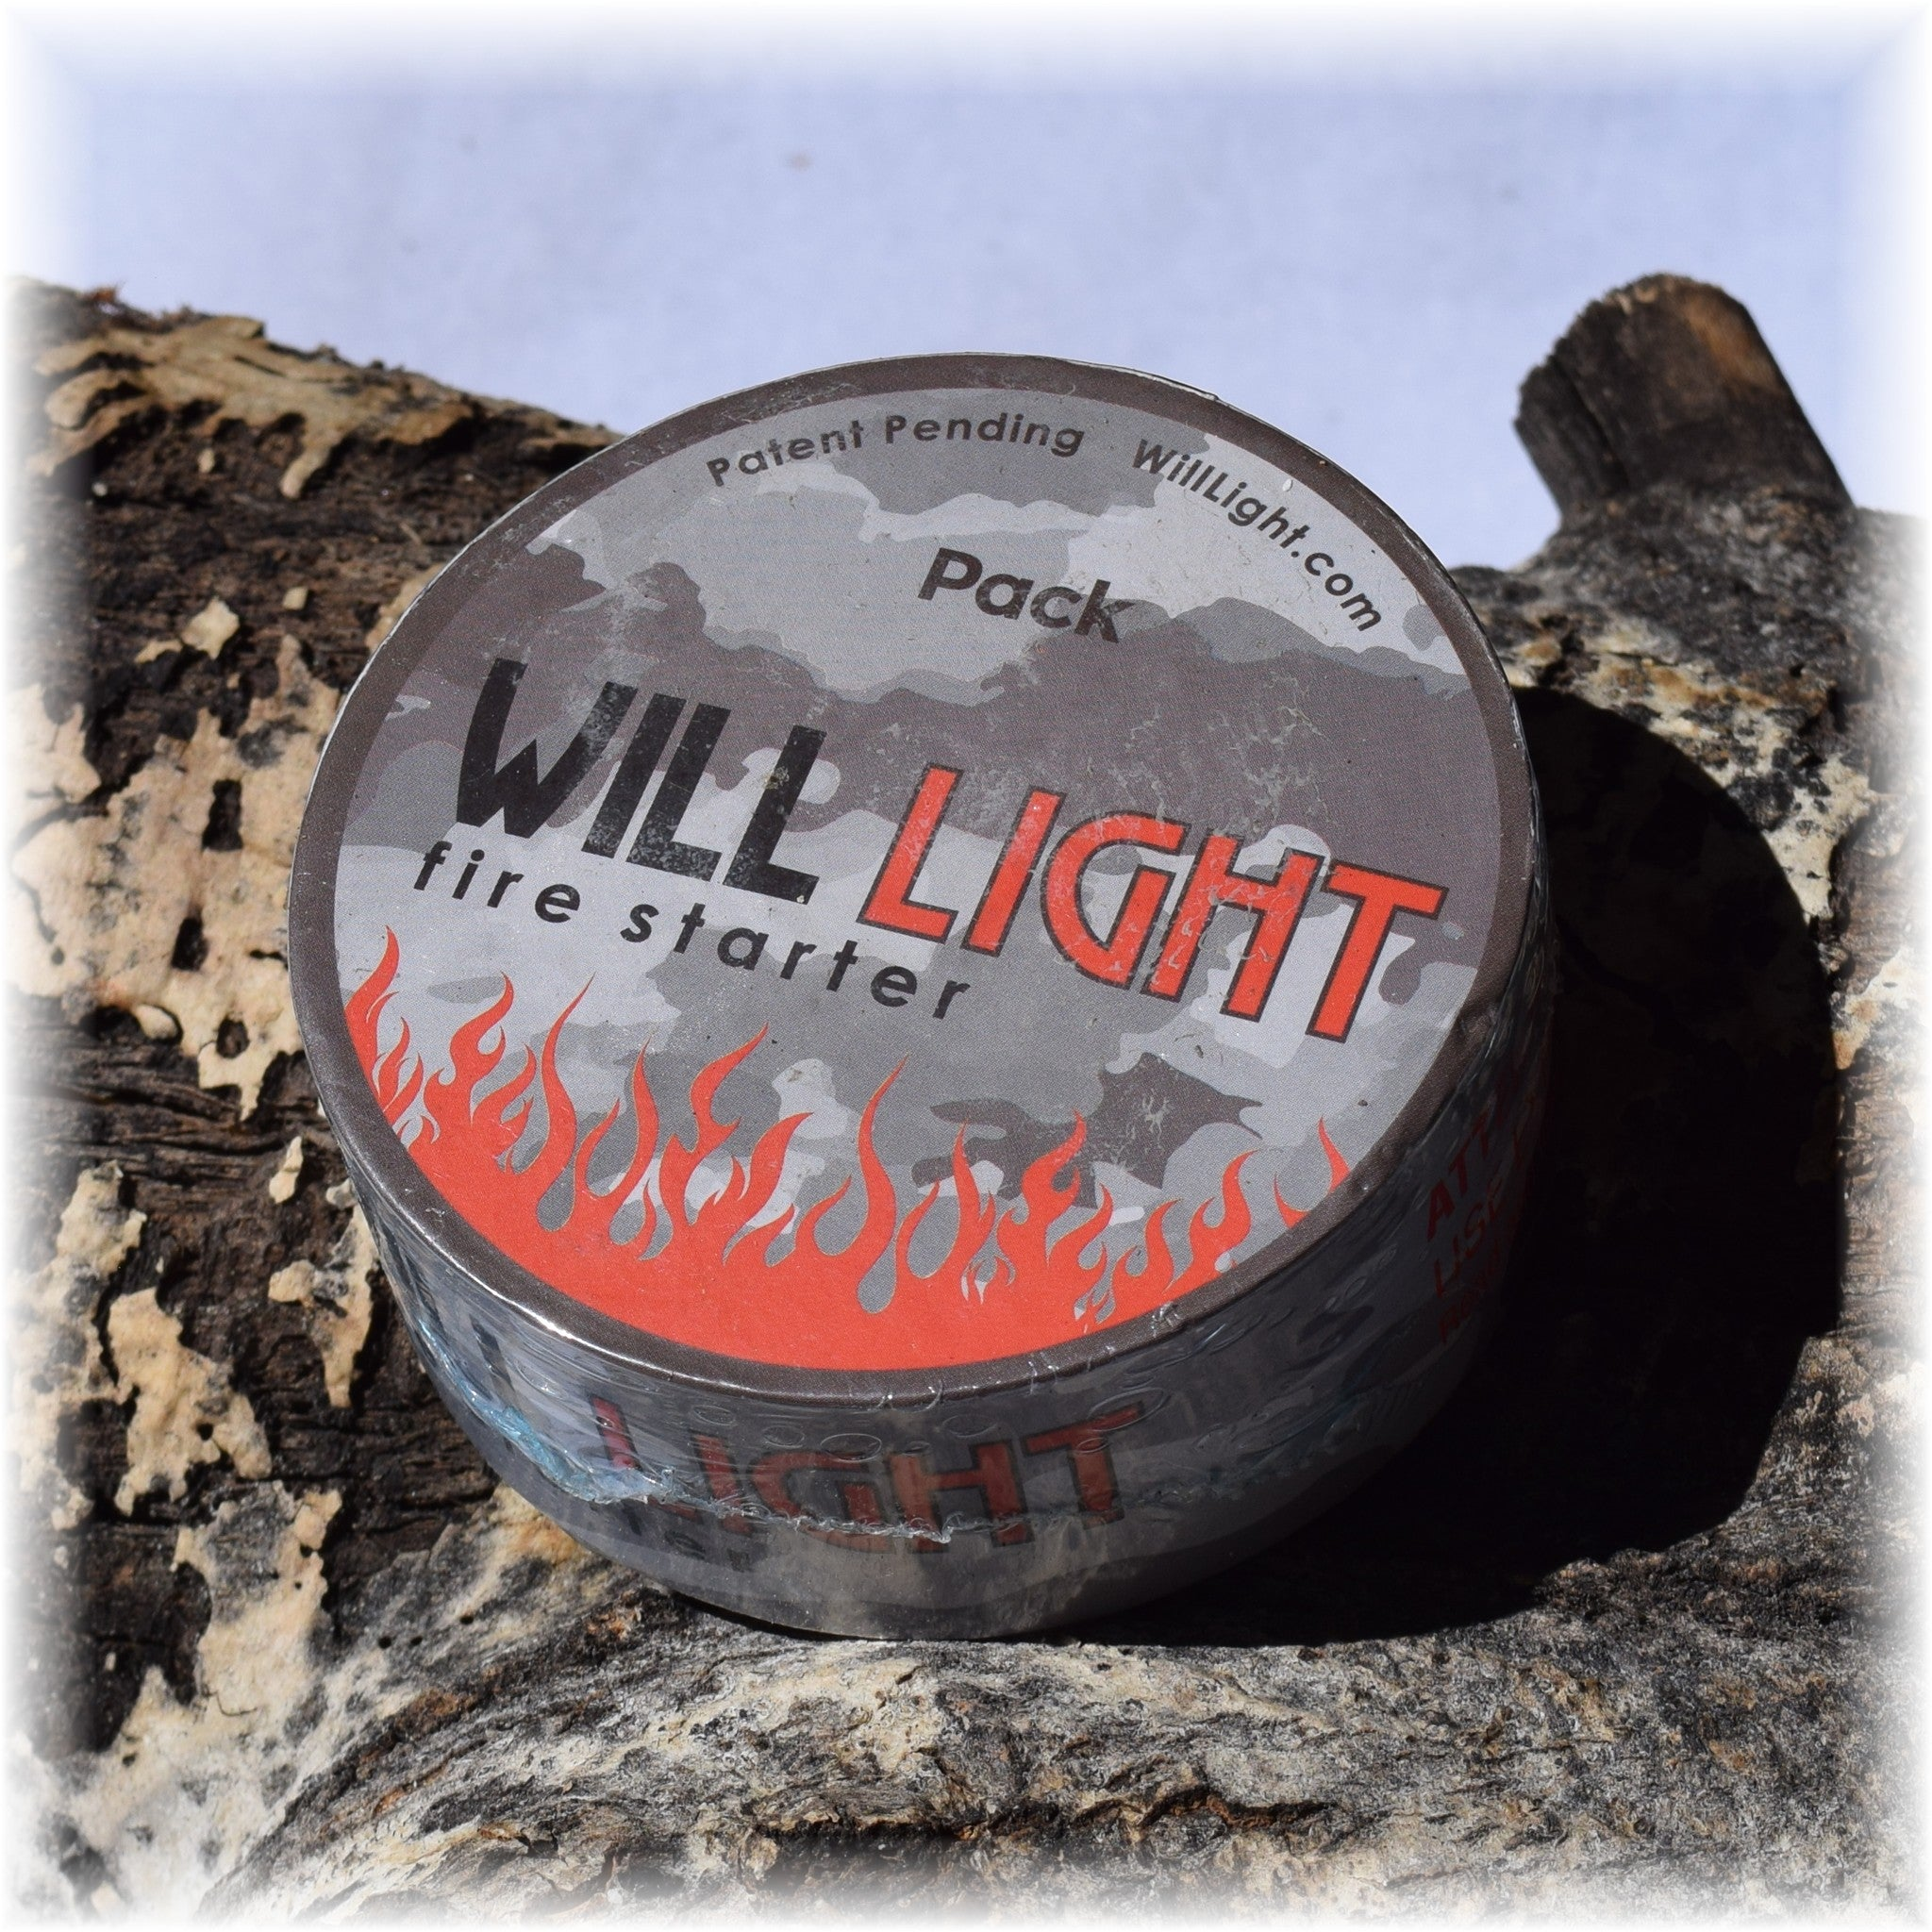 The Pack size is ideal for hikers, hunters and car or RV campers who want a very powerful fire starter in a convenient size.